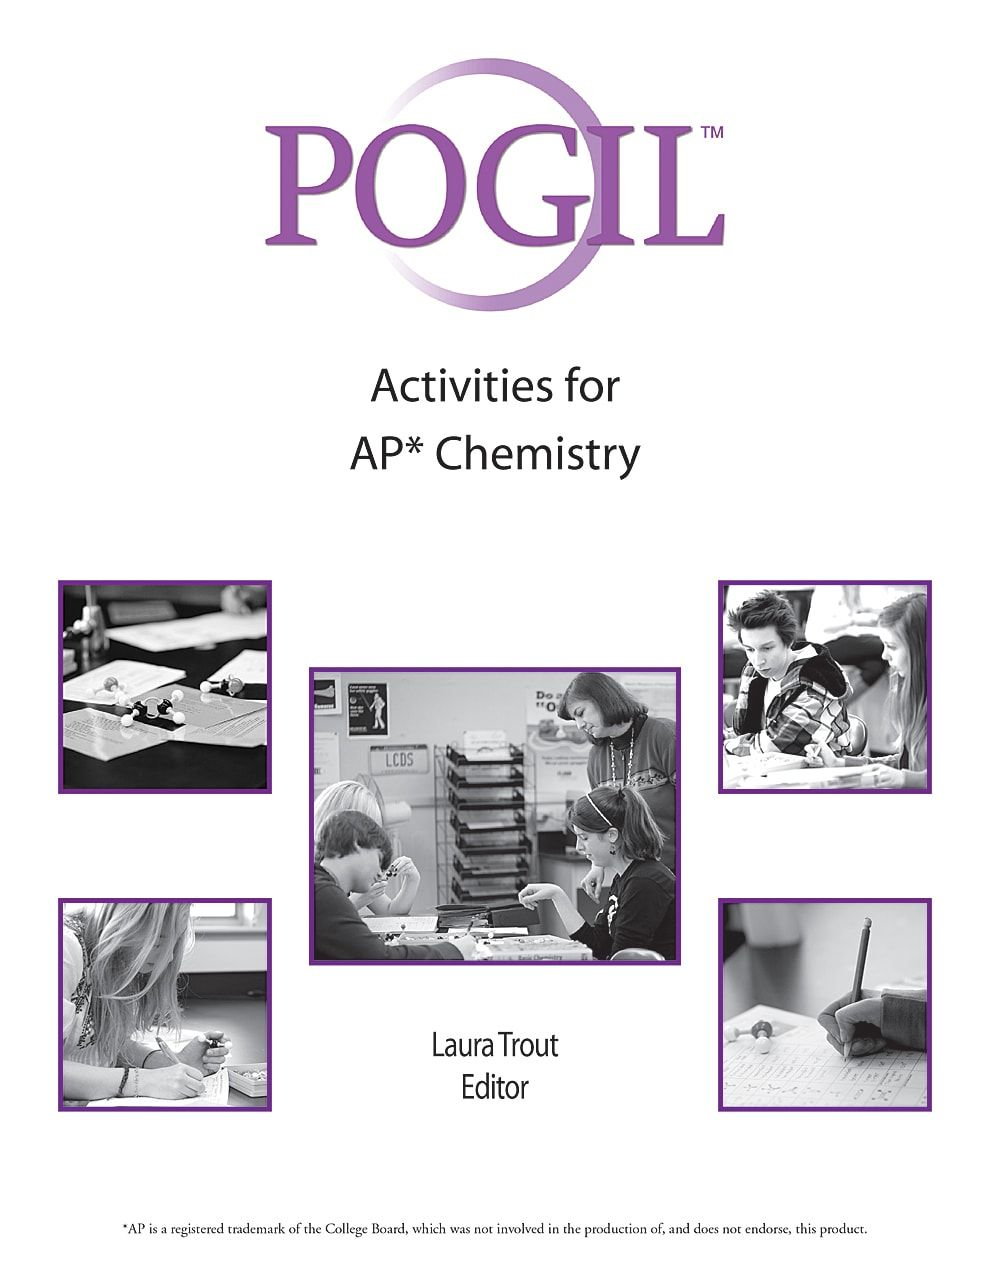 Pogil activities for ap chemistry pogil pinterest ap pogil activities for ap chemistry is a series of learning activities for ap chemistry integrate scientific practices reasoning and inquiry in the ap fandeluxe Gallery